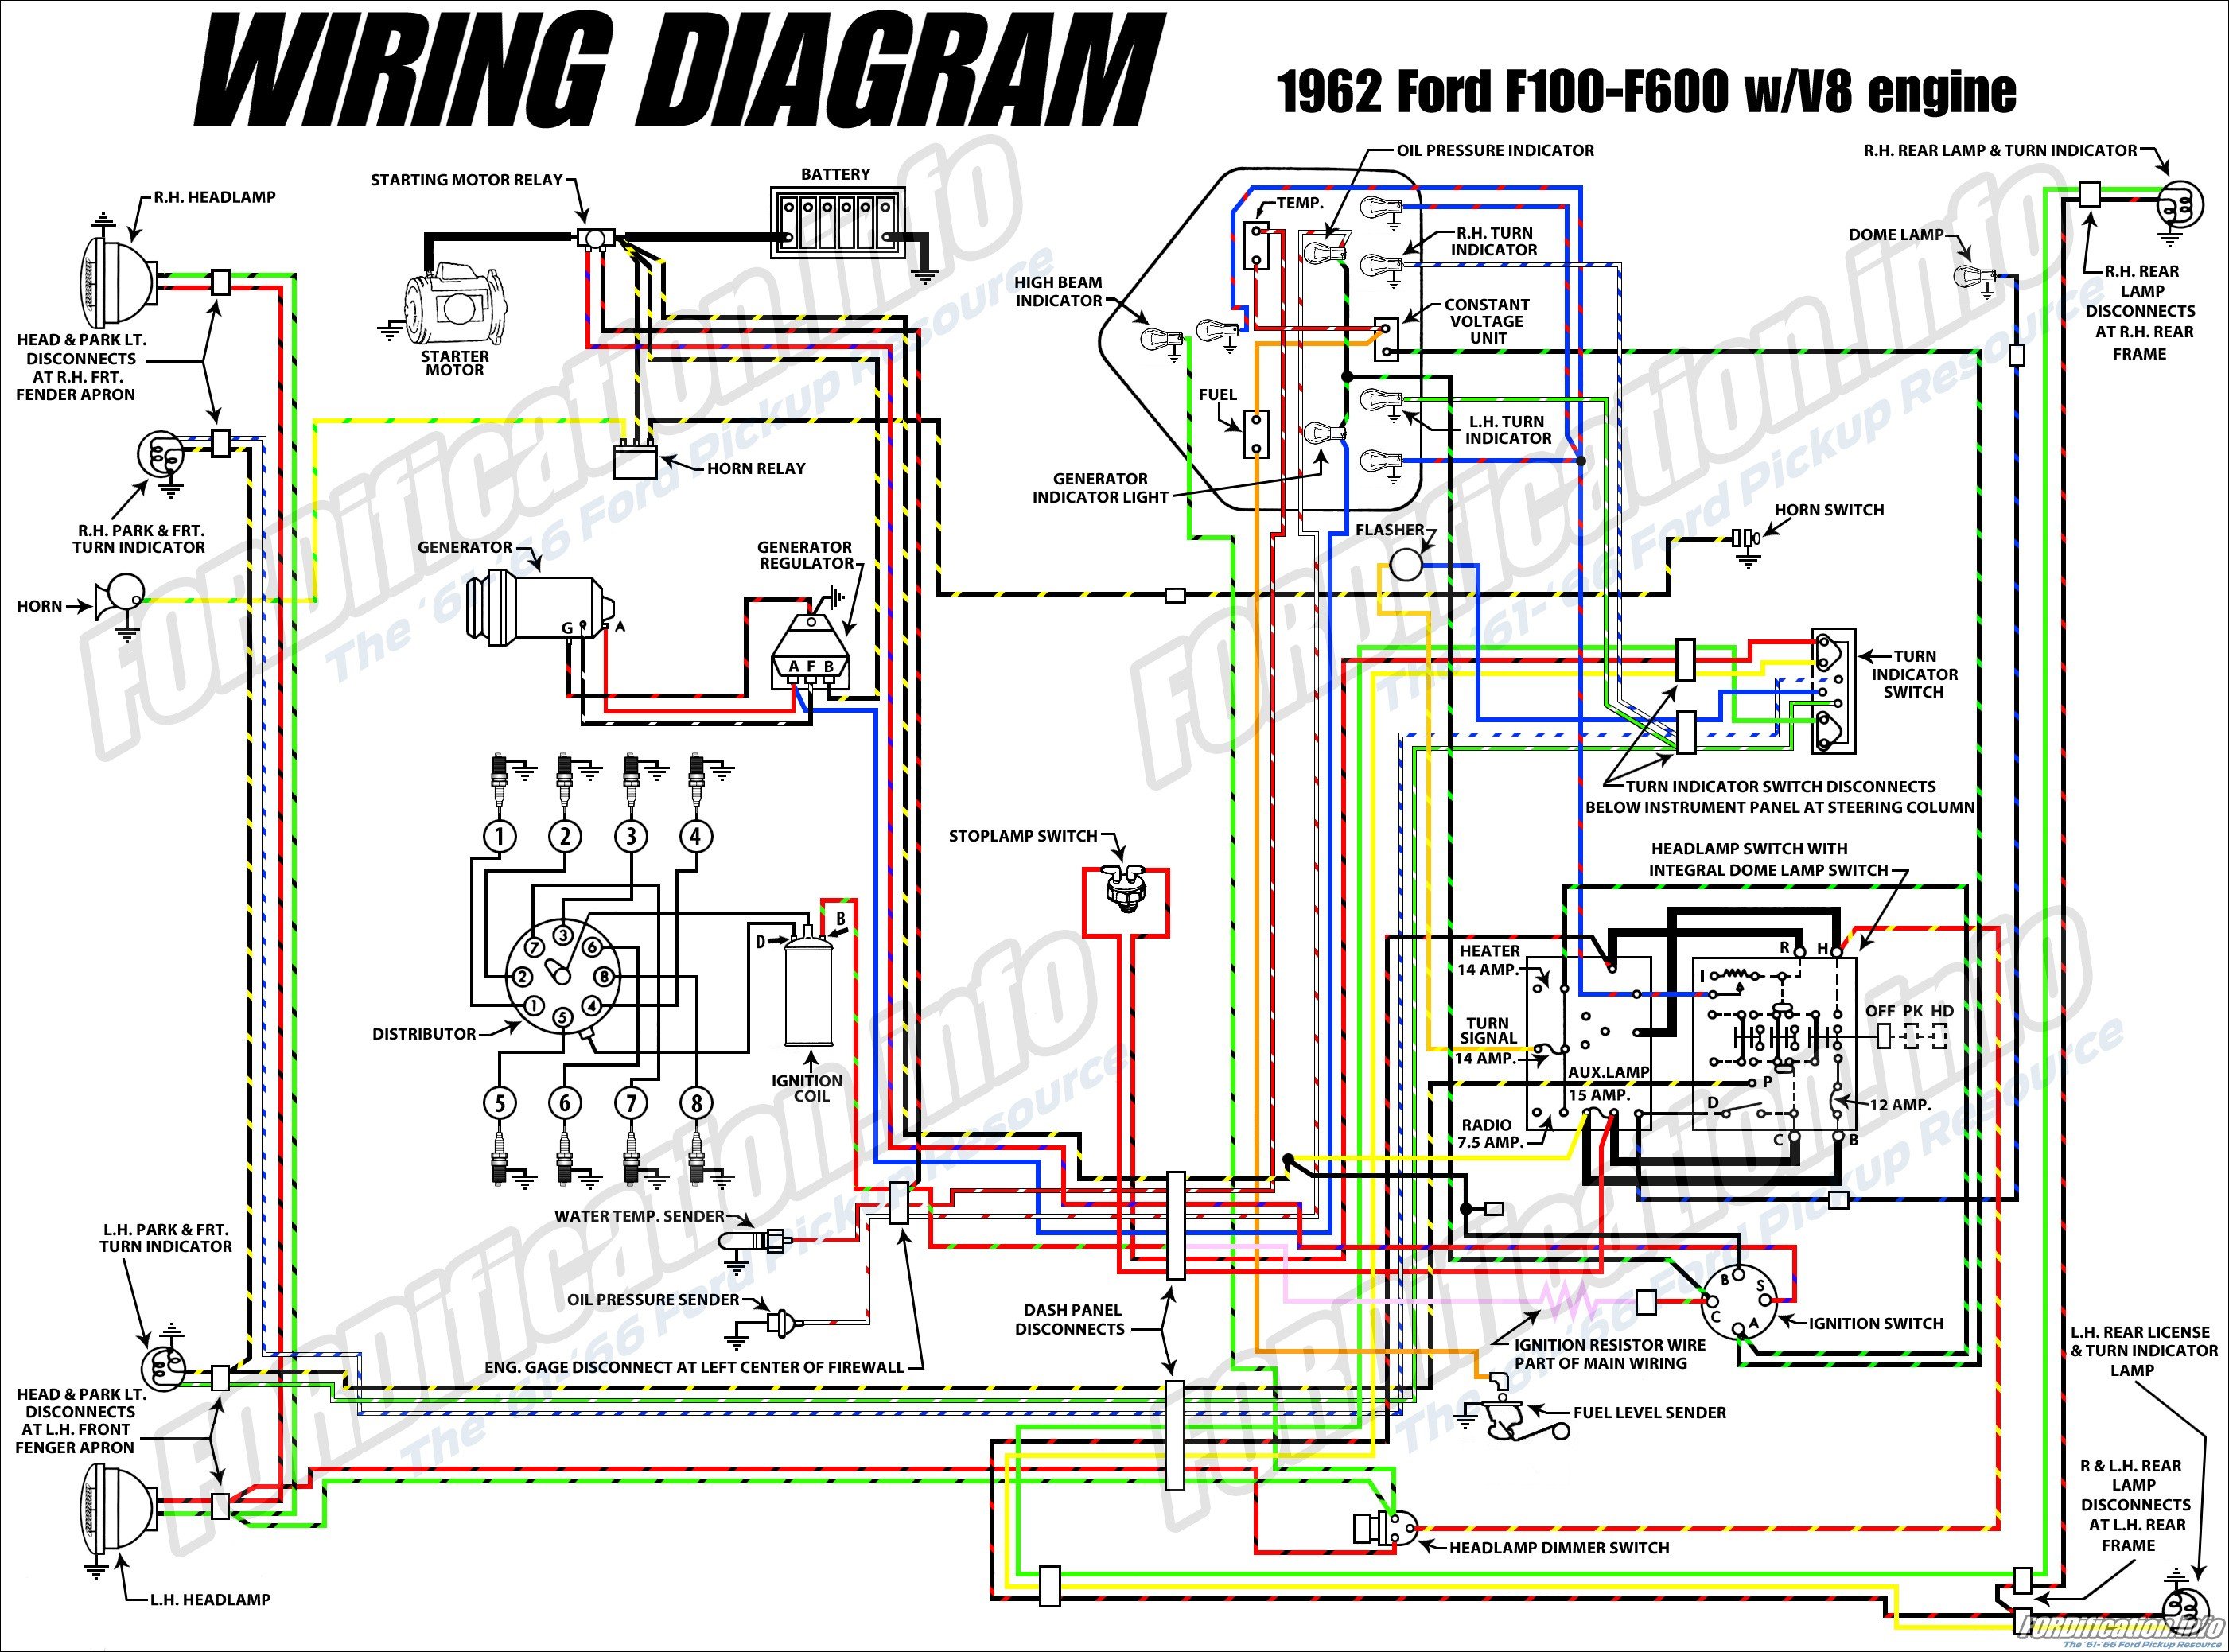 1991 ford F150 Starter Wireing 1946 ford Truck Wiring Wiring Diagram Reading Reading Of 1991 ford F150 Starter Wireing